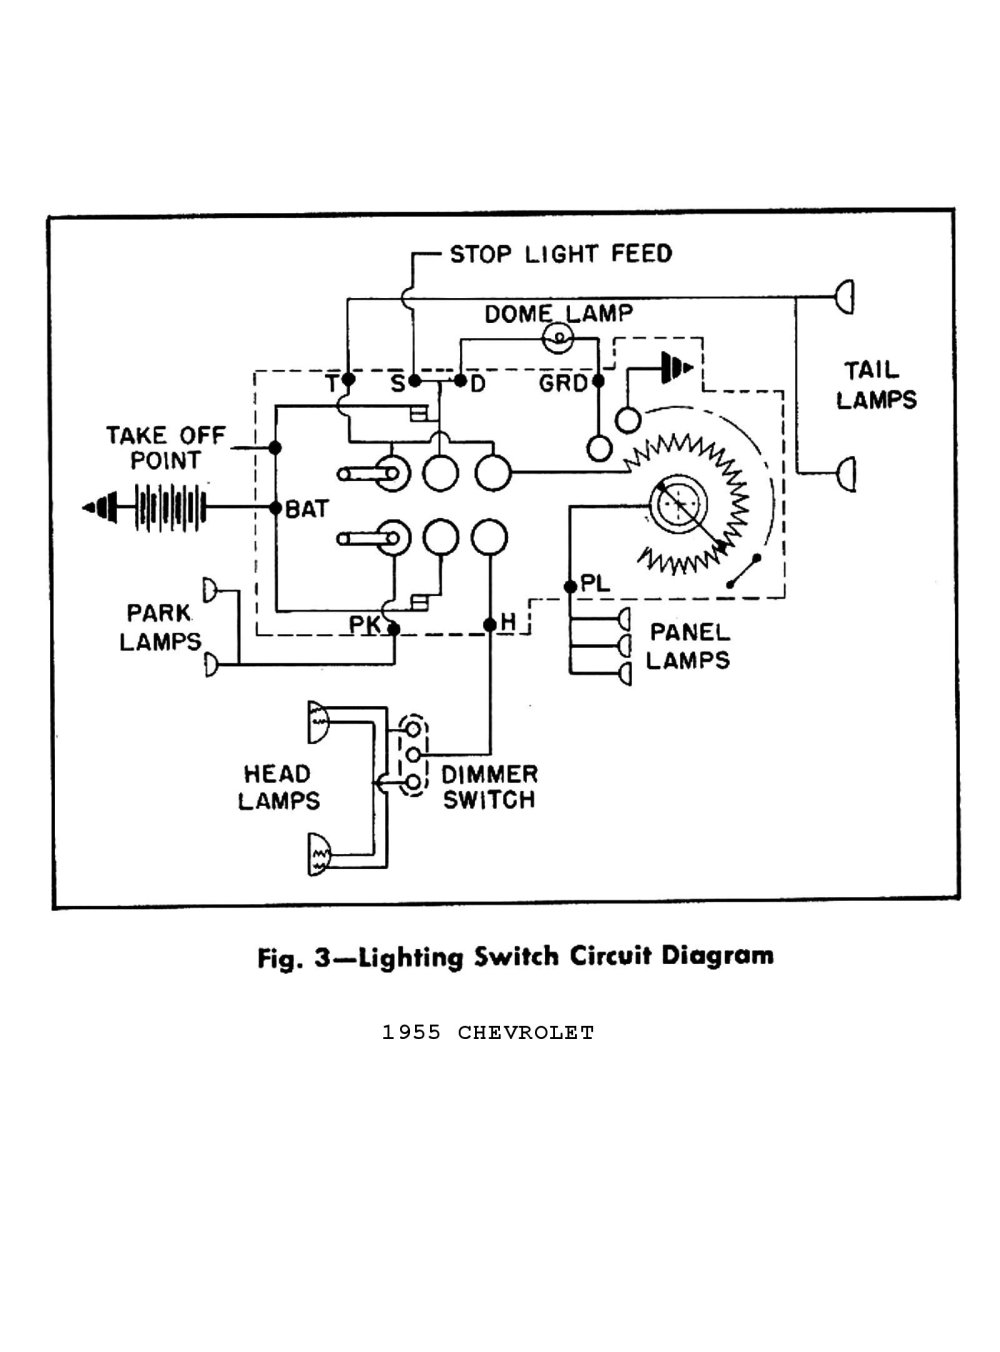 medium resolution of gm headlight switch wiring diagram 407 wiring diagram third level rh 9 14 22 jacobwinterstein com 1956 chevy headlight switch wiring diagram 69 gmc